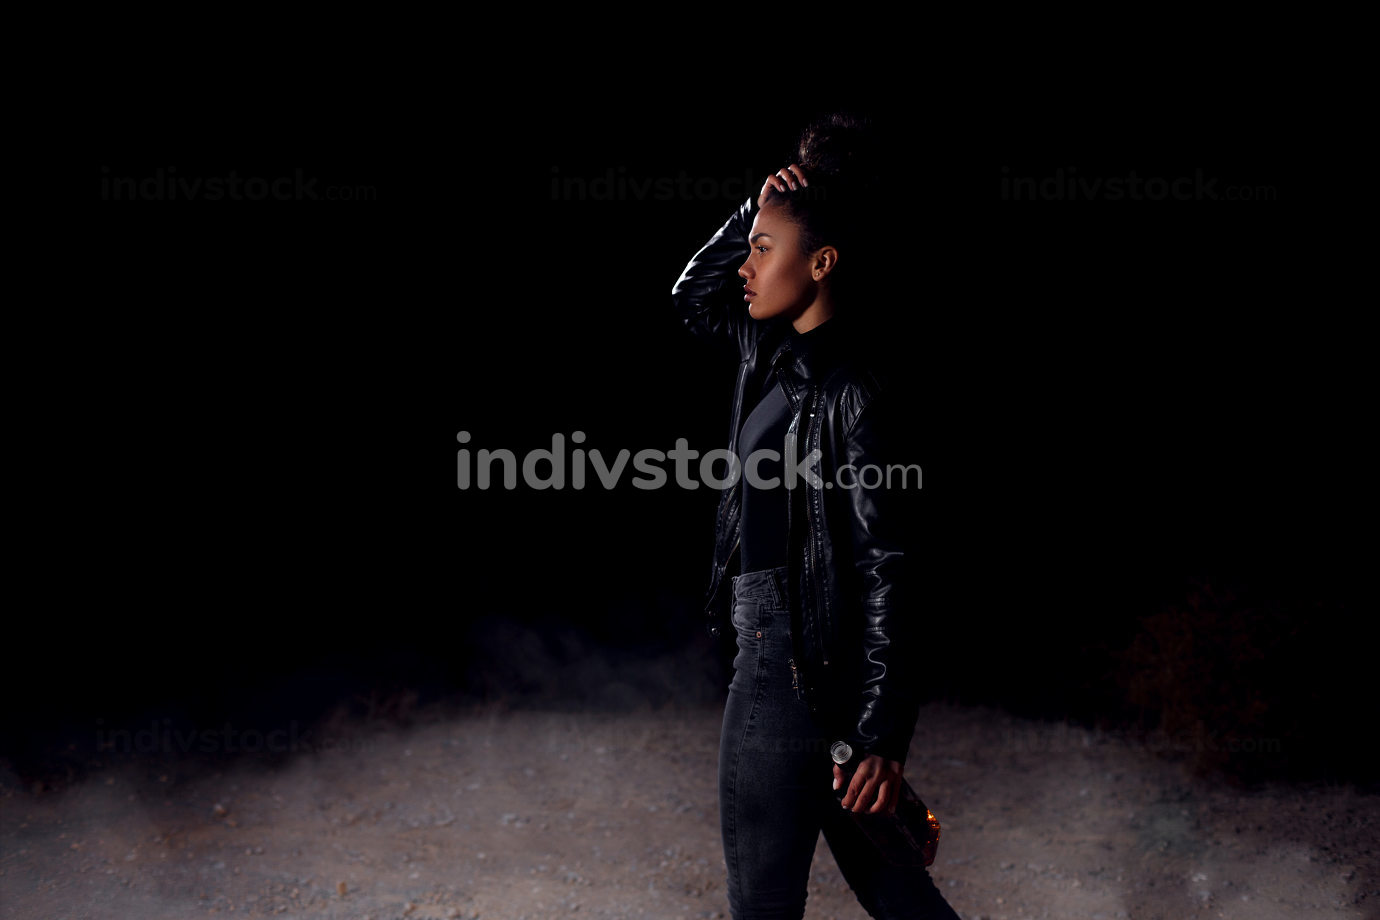 a young girl, African-American mulatto girl in a leather jacket and black clothes